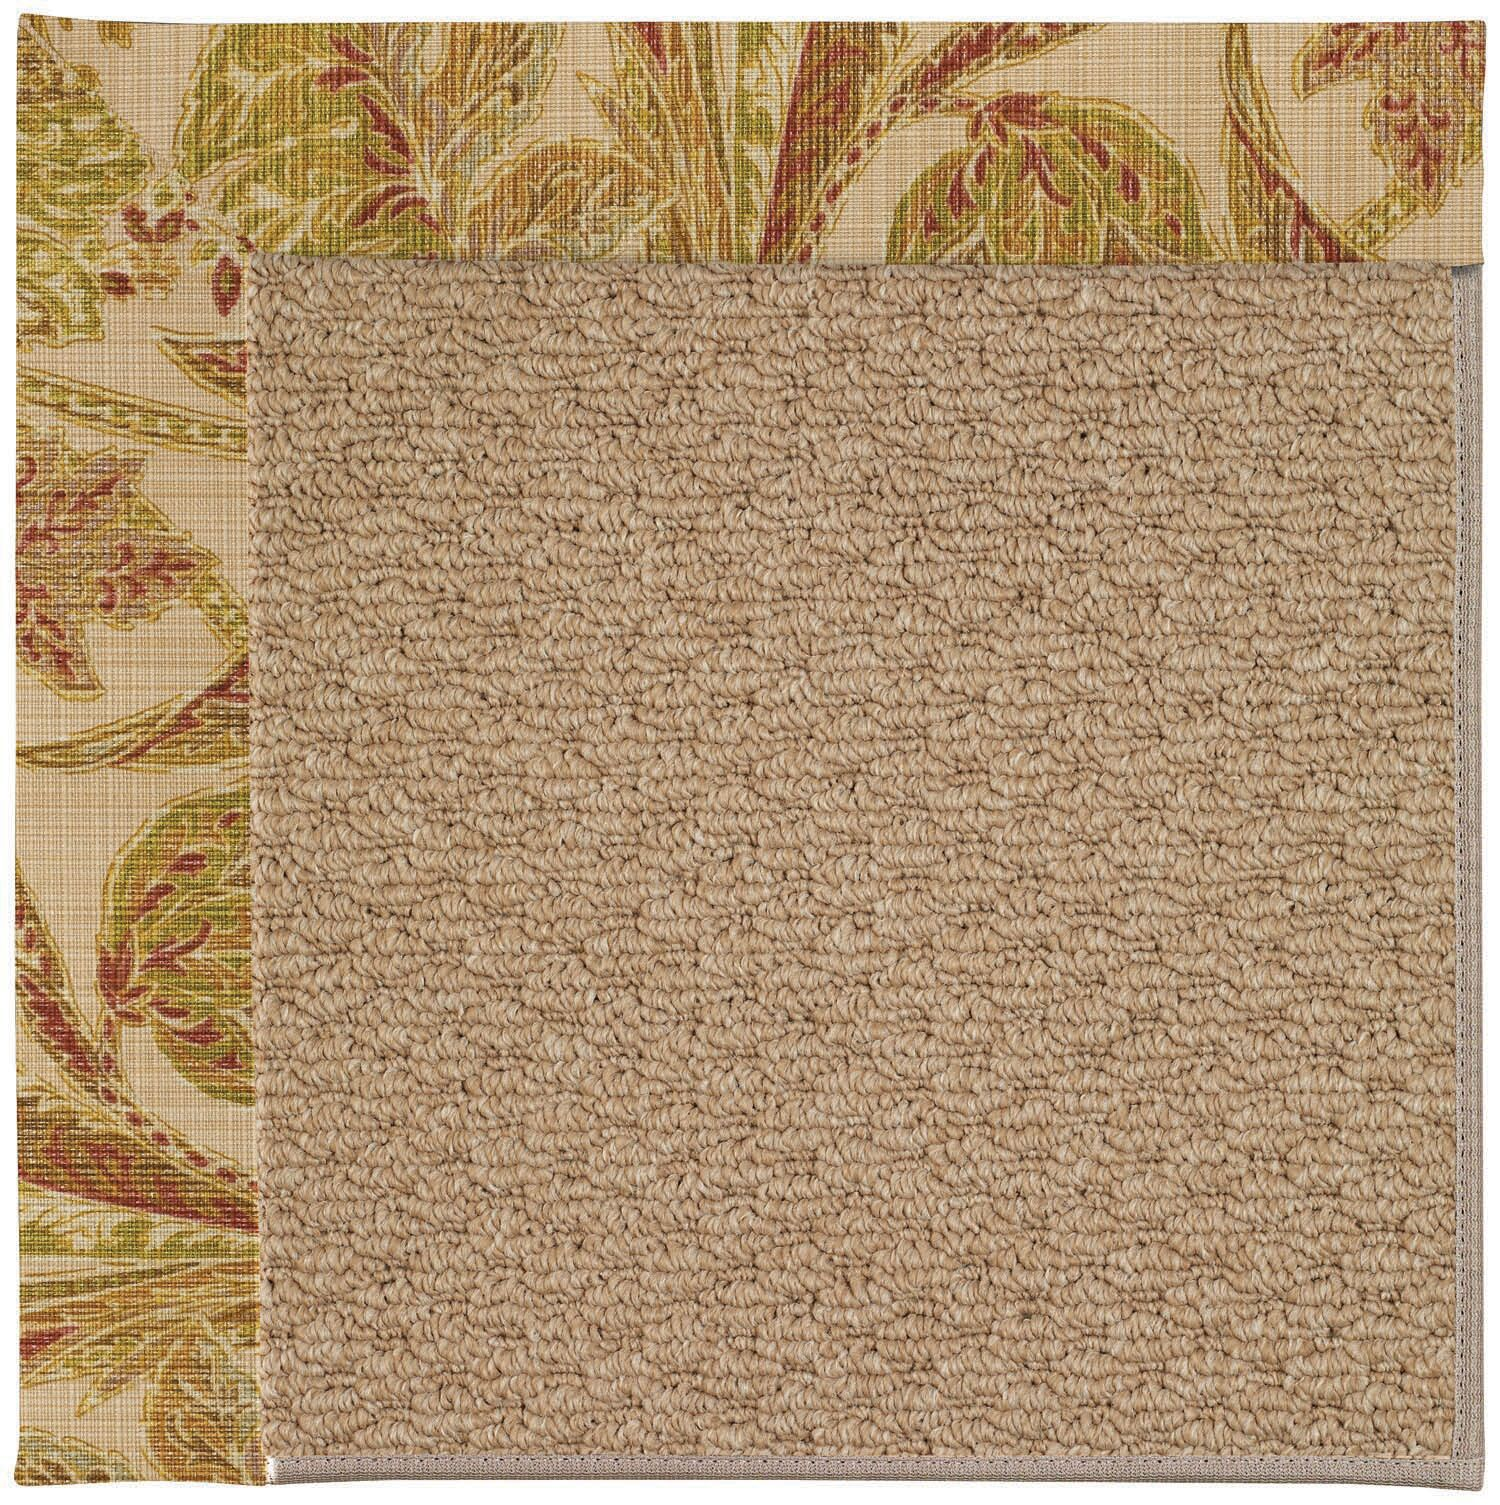 Lisle Machine Tufted Tan/Brown Indoor/Outdoor Area Rug Rug Size: Rectangle 3' x 5'